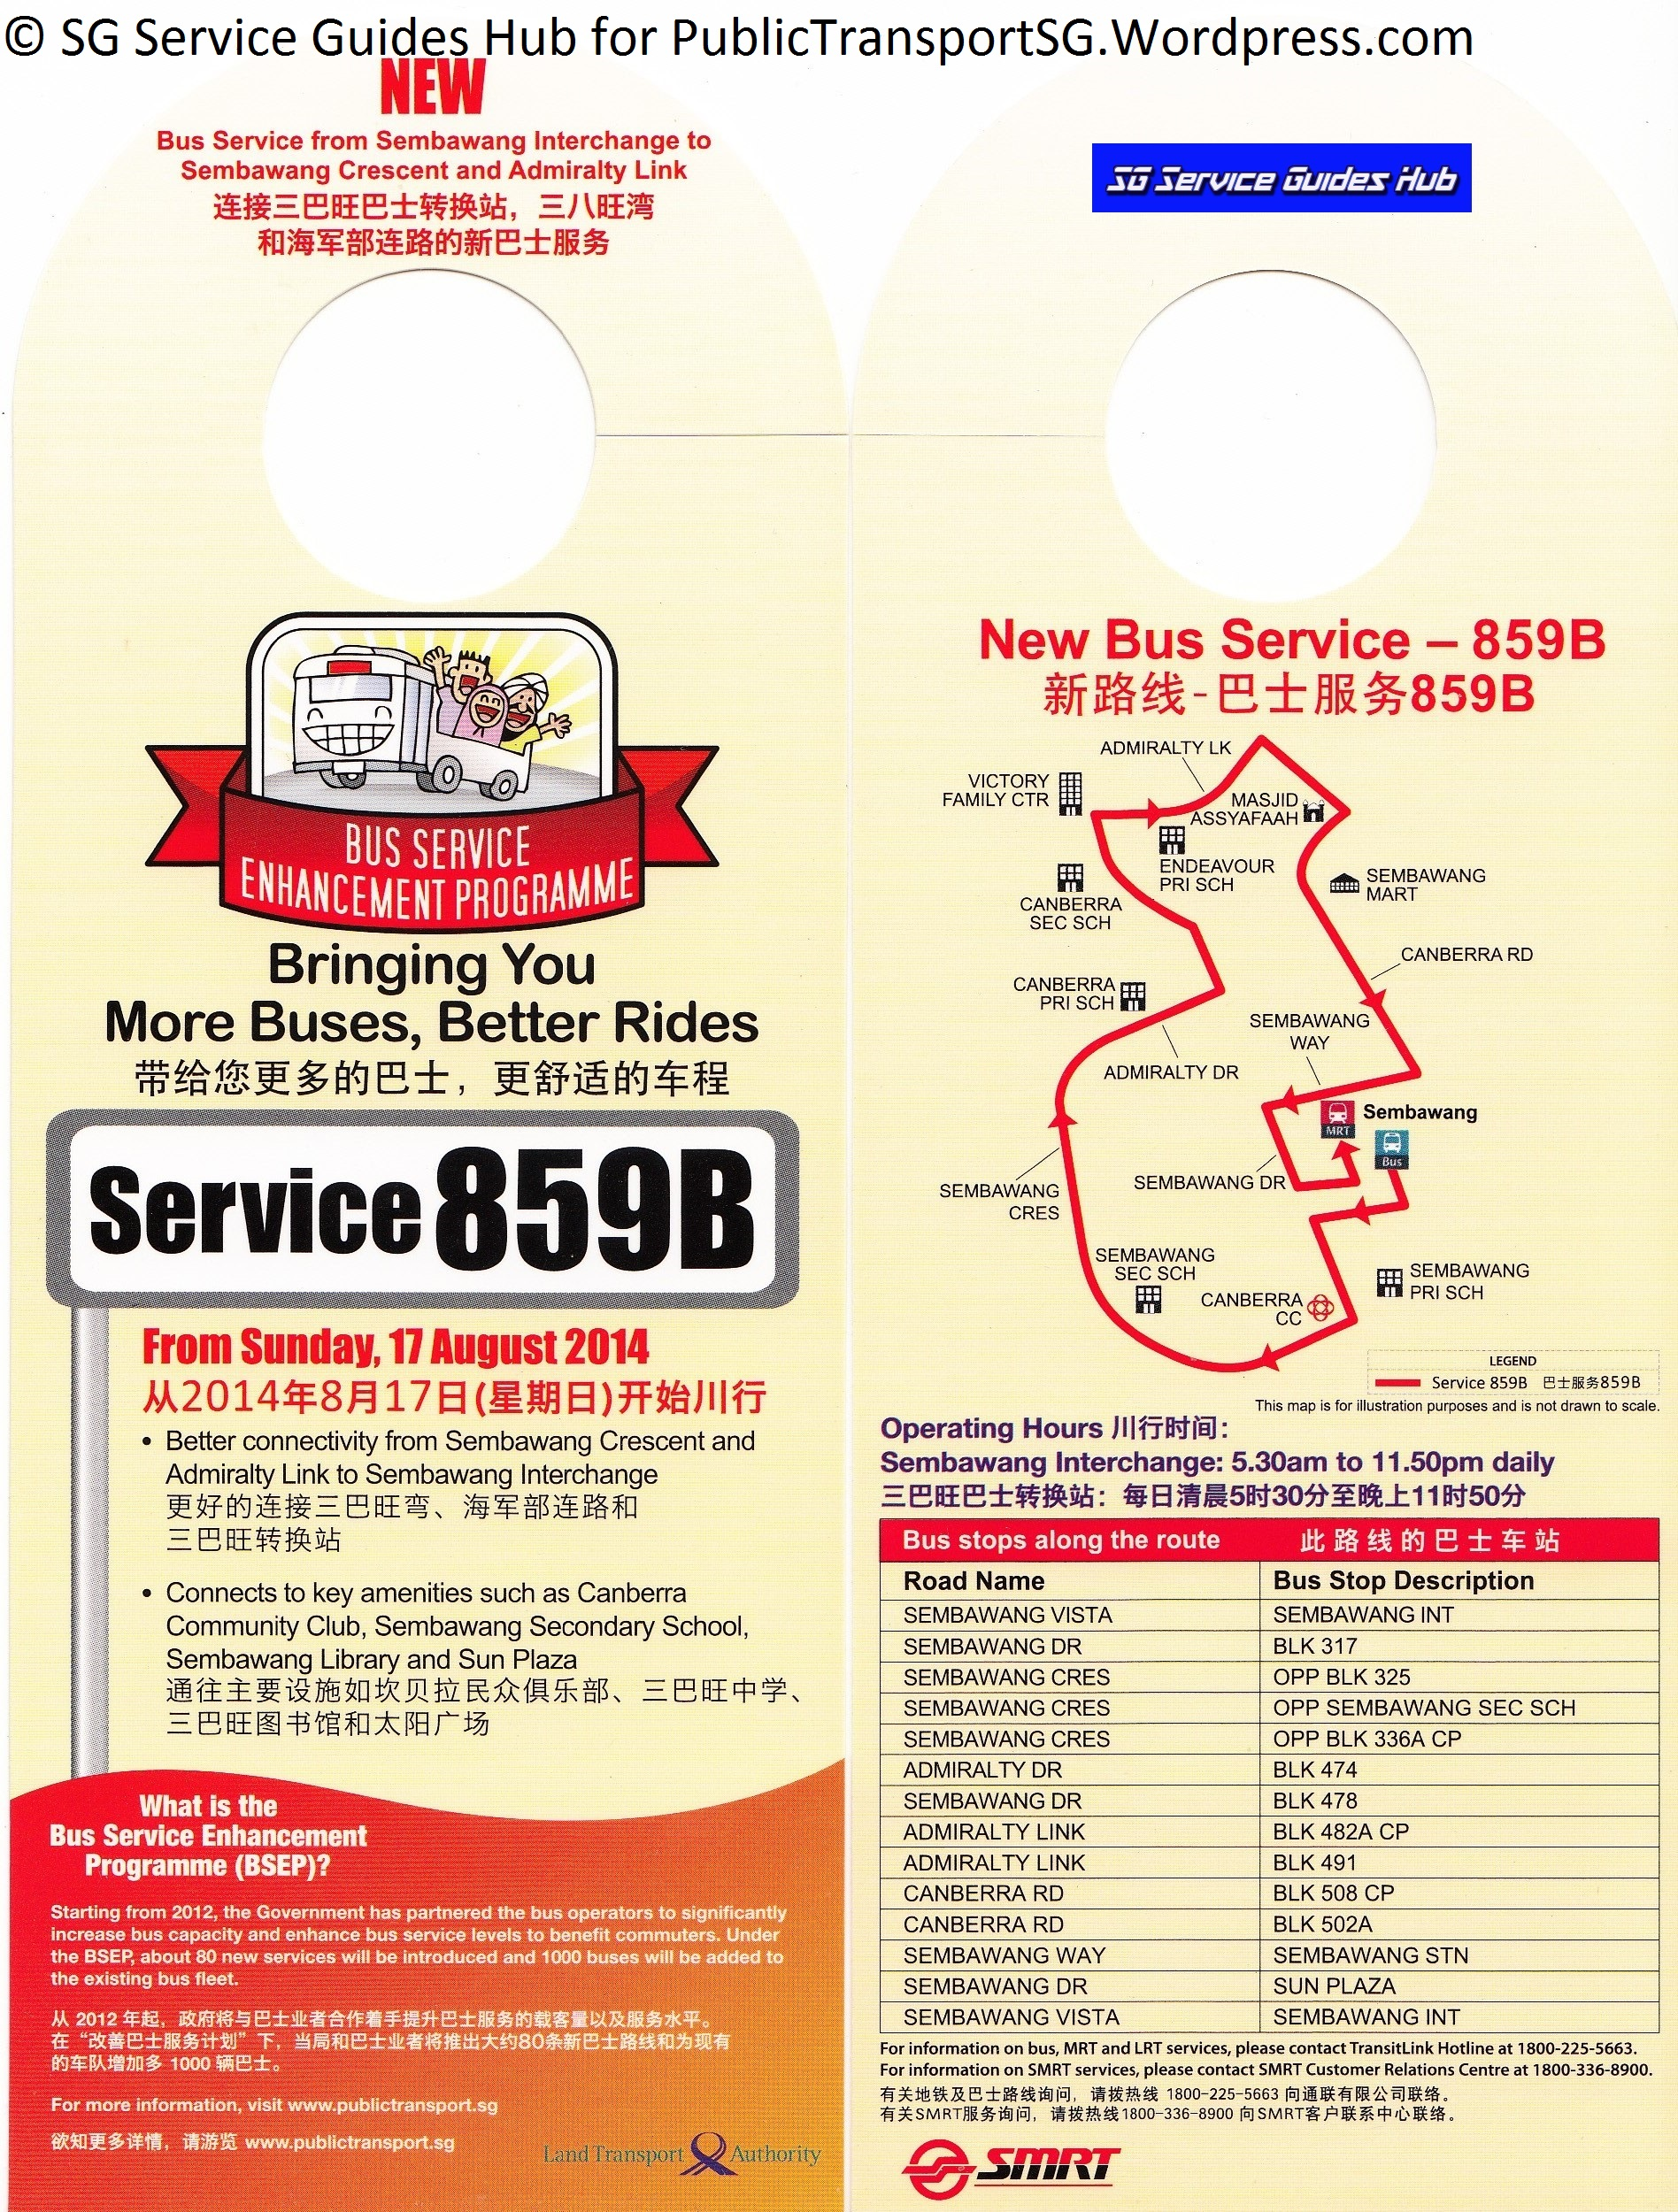 BSEP Promotional Hanger for Service 859B